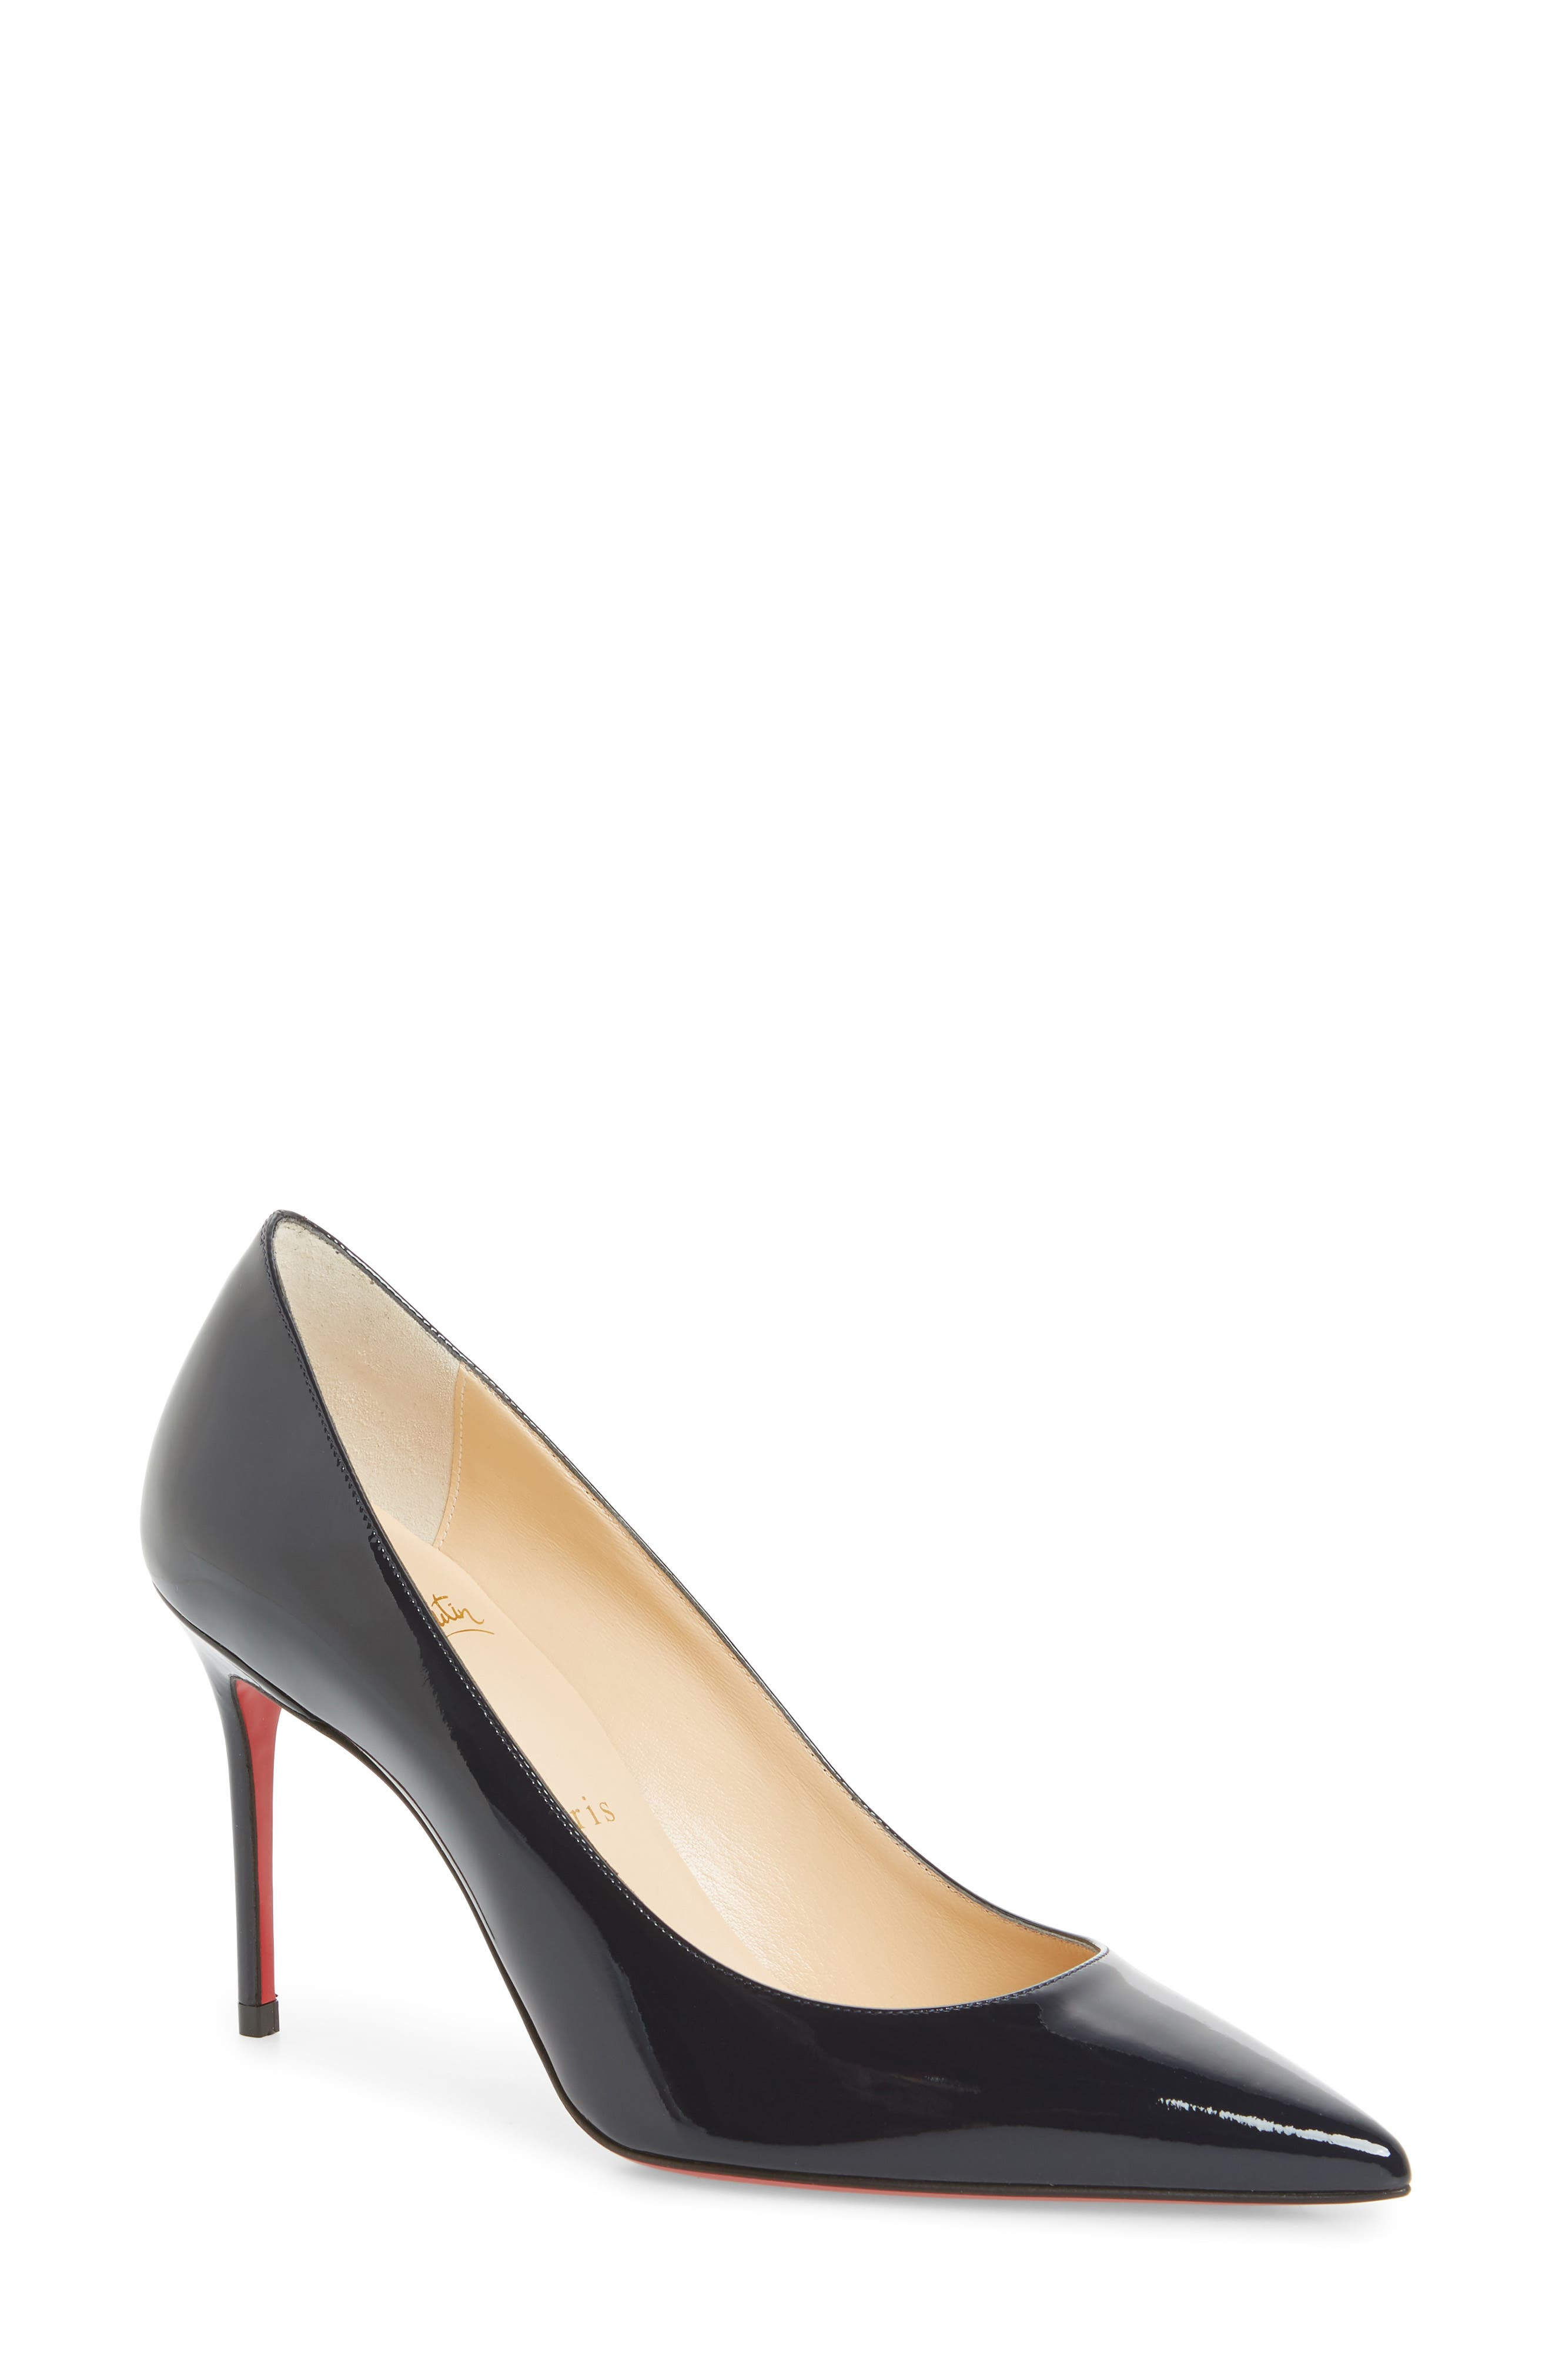 5864bbeda4ca Christian Louboutin Decollete Pointy Toe Pump In Marine Blue